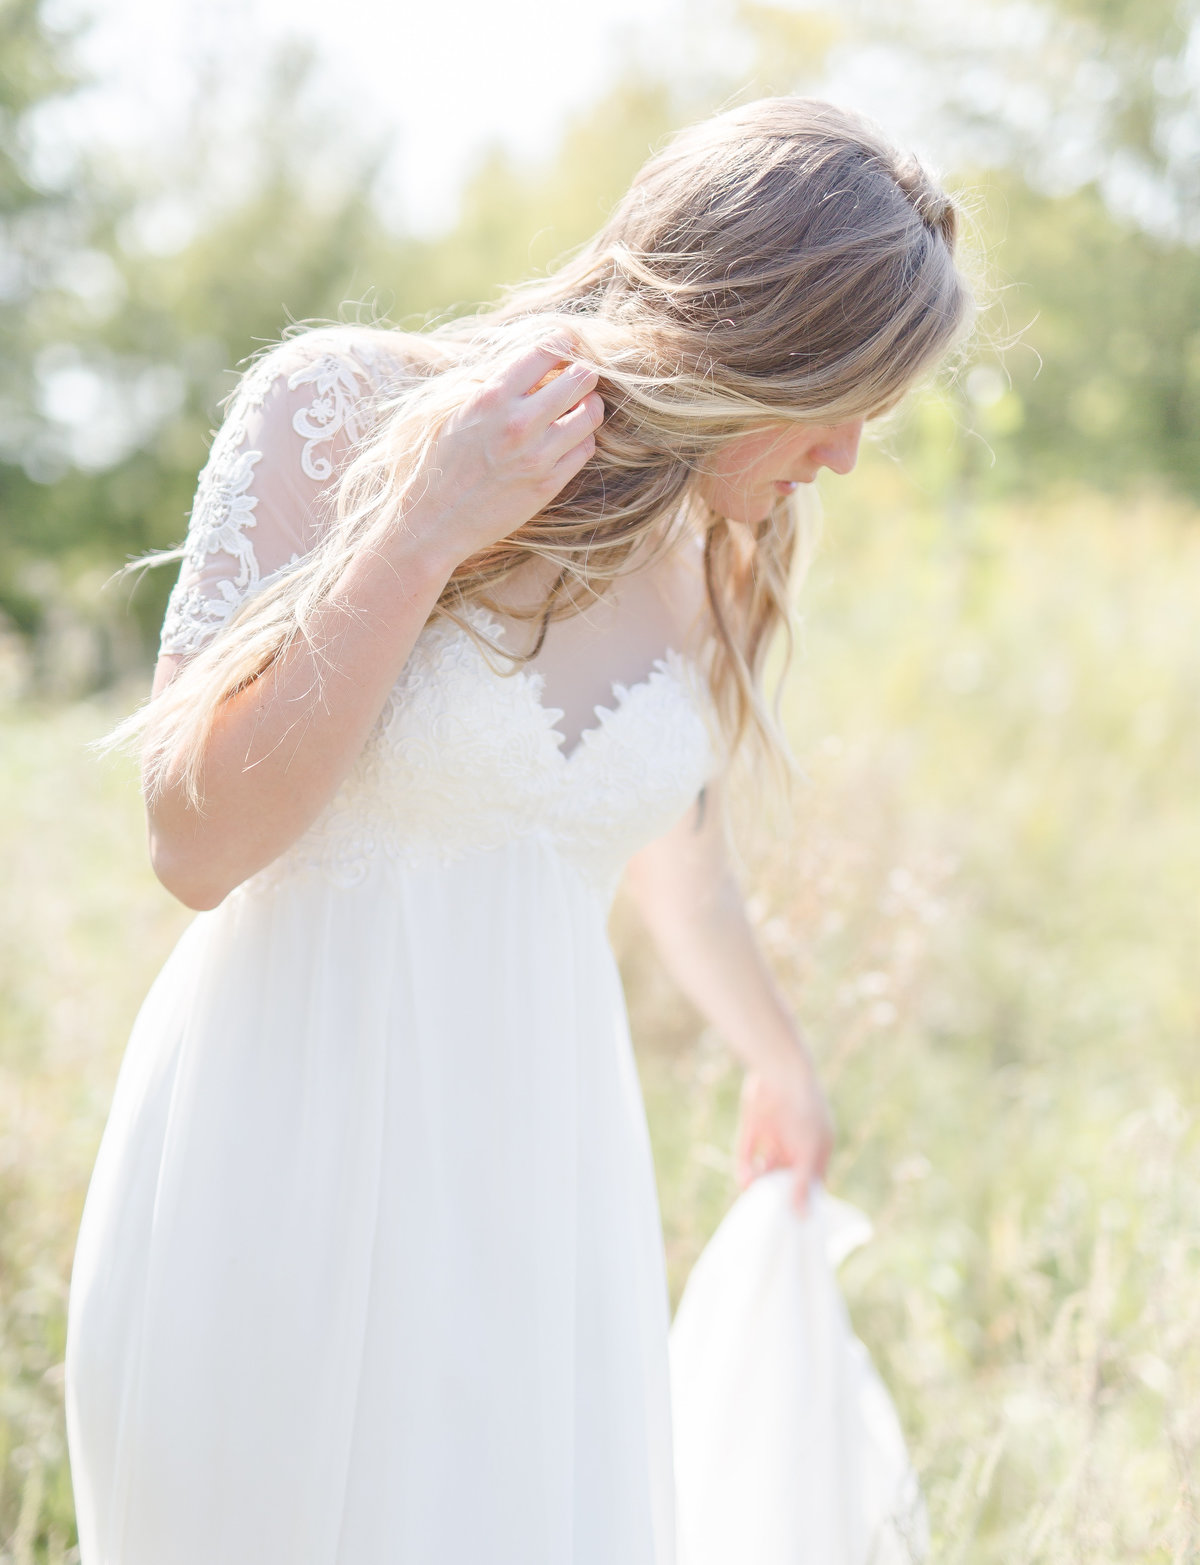 Kailey - Styled Shoot - New Edits-124